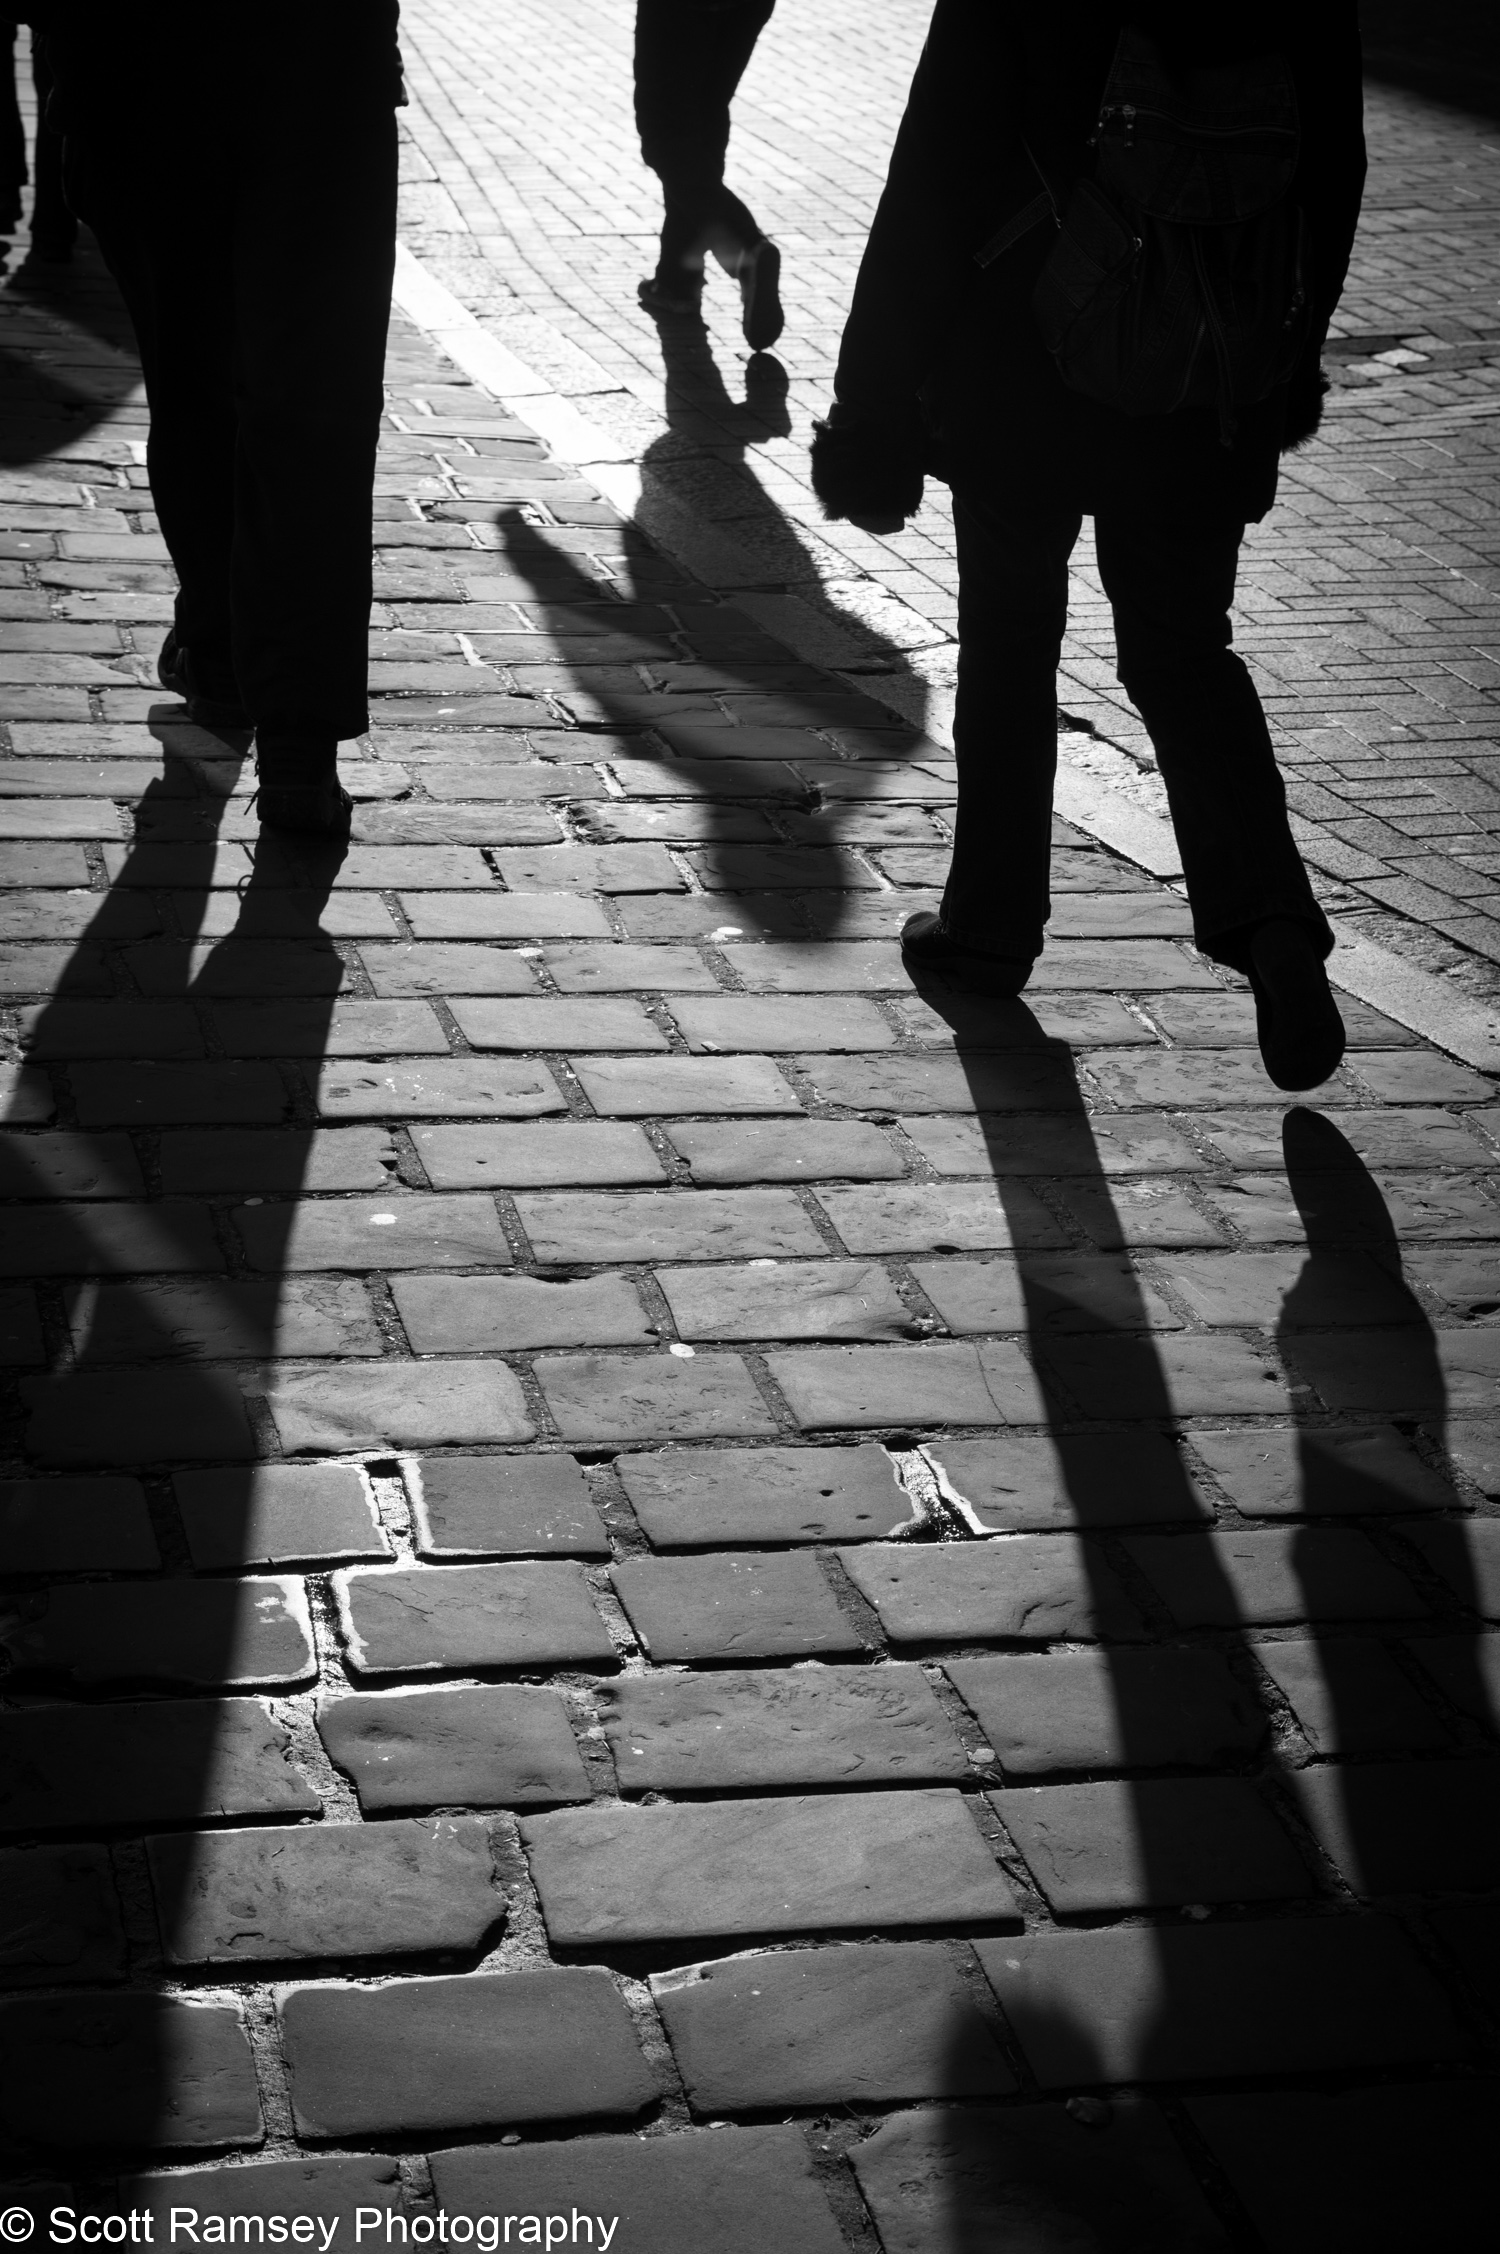 In the winter sun shoppers looking for a Boxing Daysale bargain cast shadows onto the street in Chichester, West Sussex, UK.